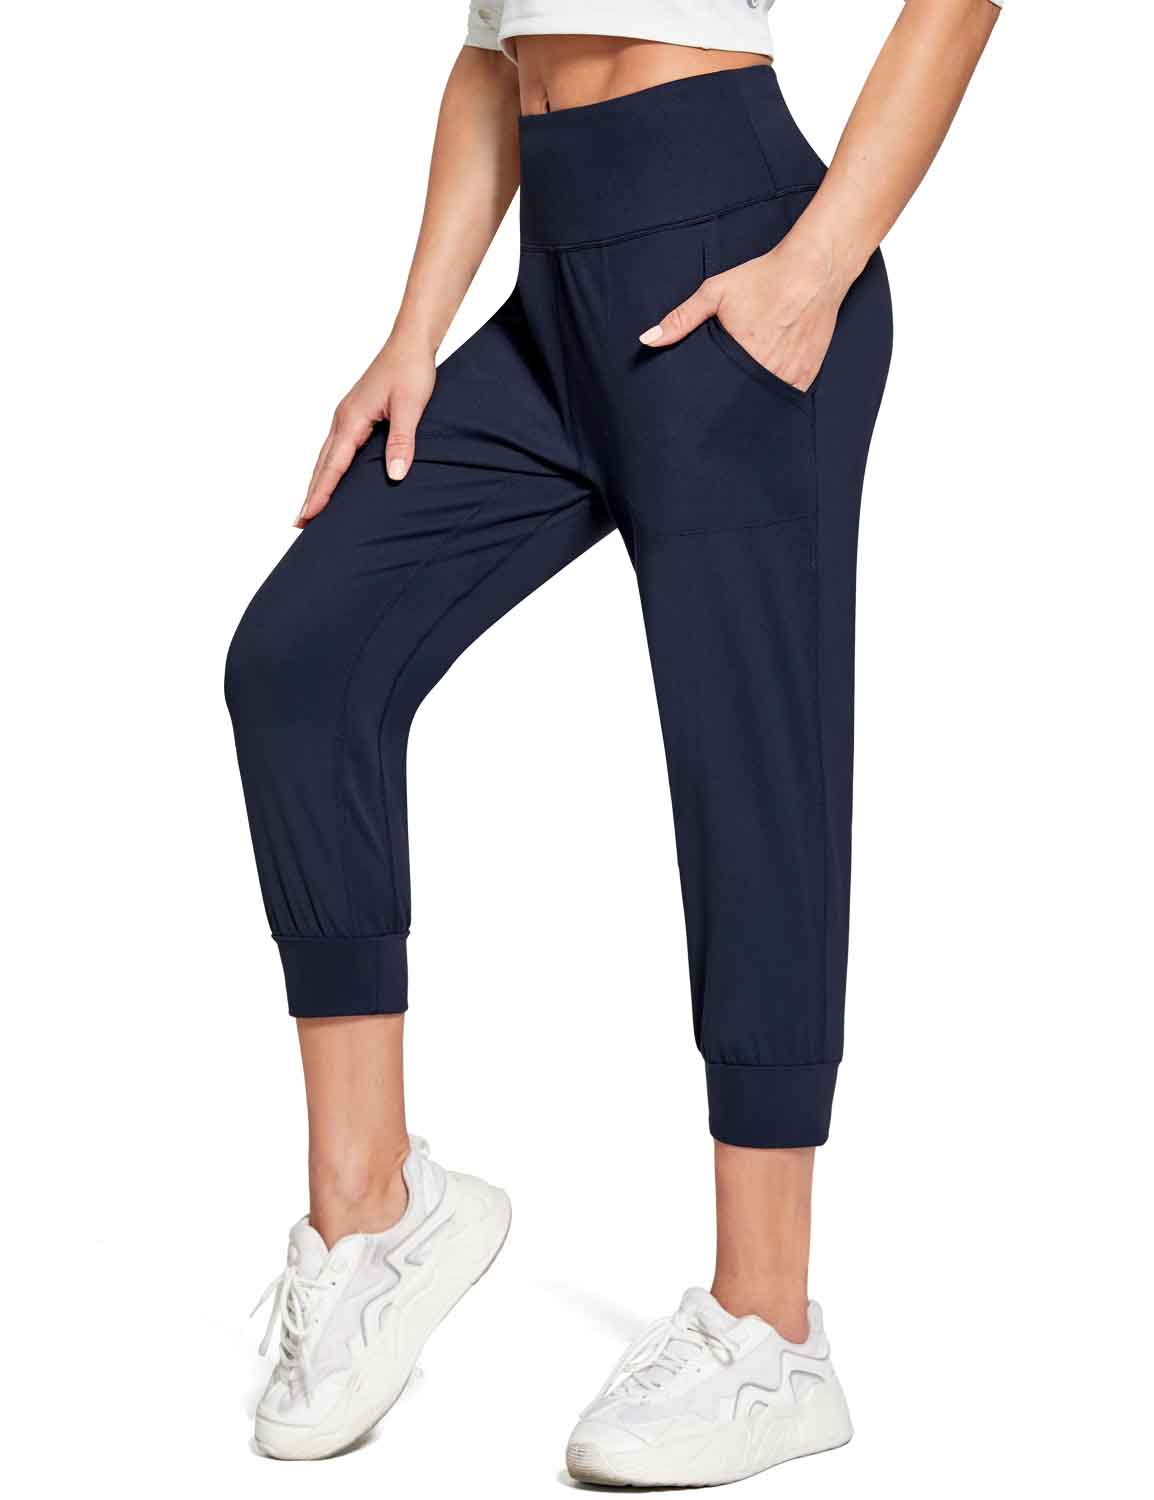 Baleaf Women's High Rise Soft Cropped Workout Pockets Joggers navy side